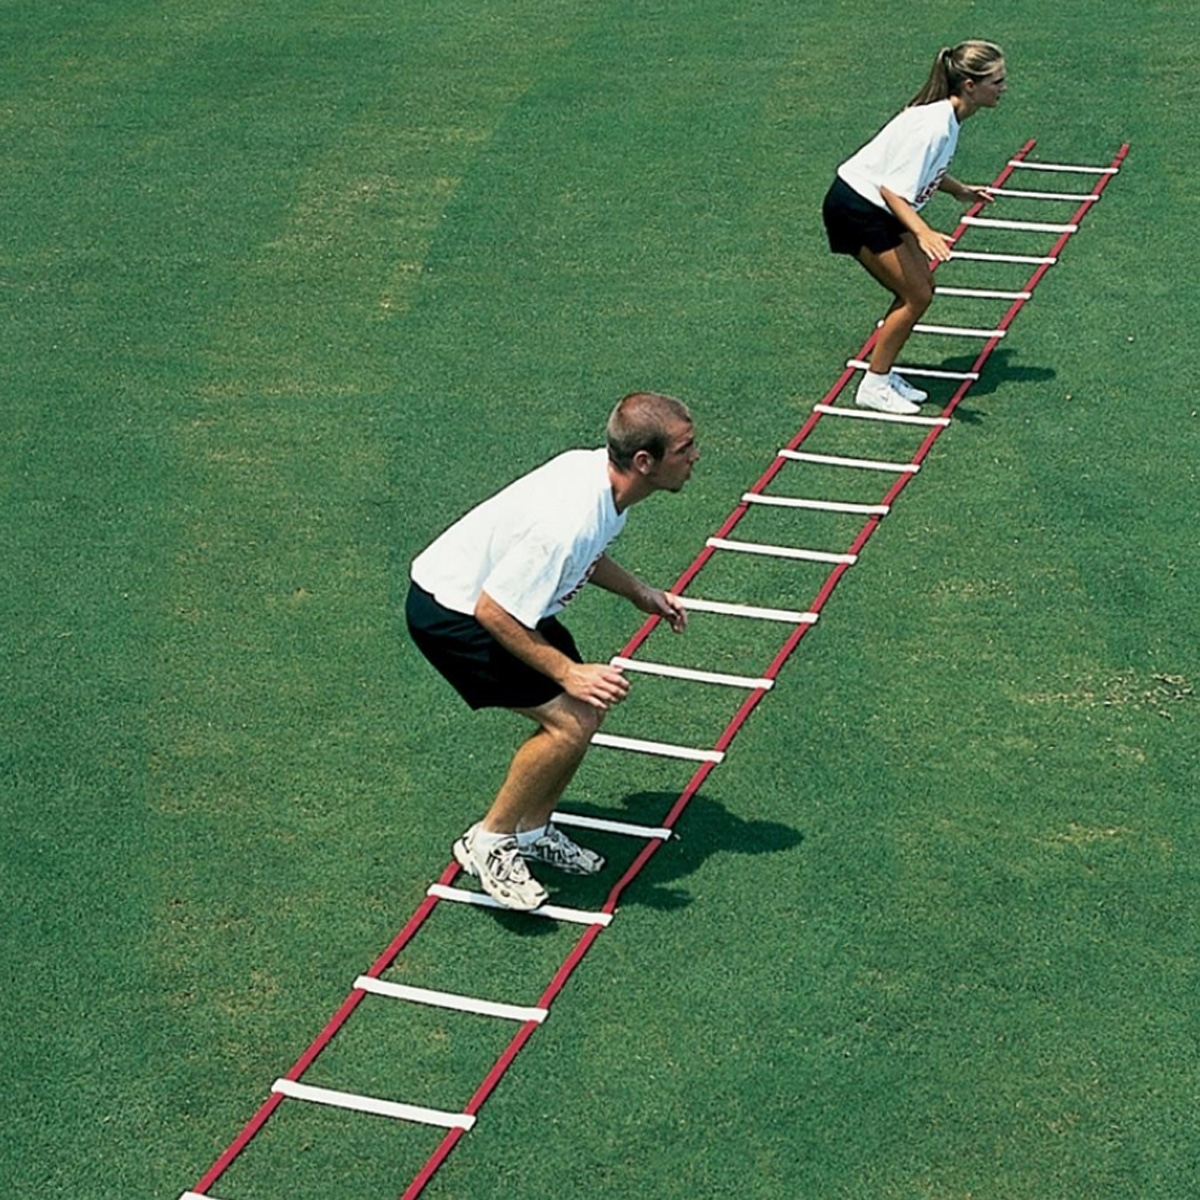 agility drill and footwork ladder on grass field